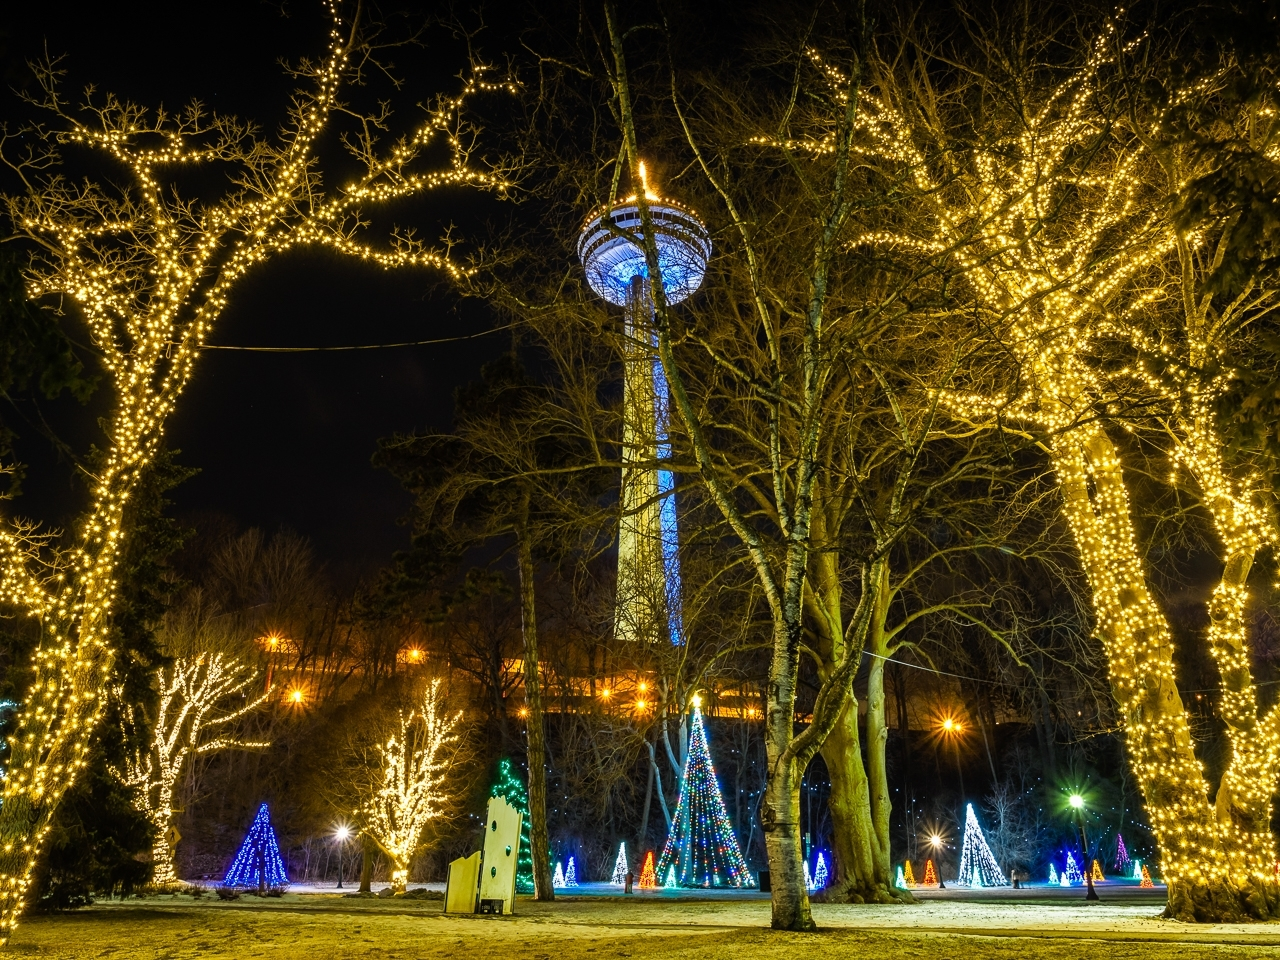 Skylon Tower at Night - This collection was taken during the final weekend of the Festival of Lights during January in Niagara Falls, Ontario.